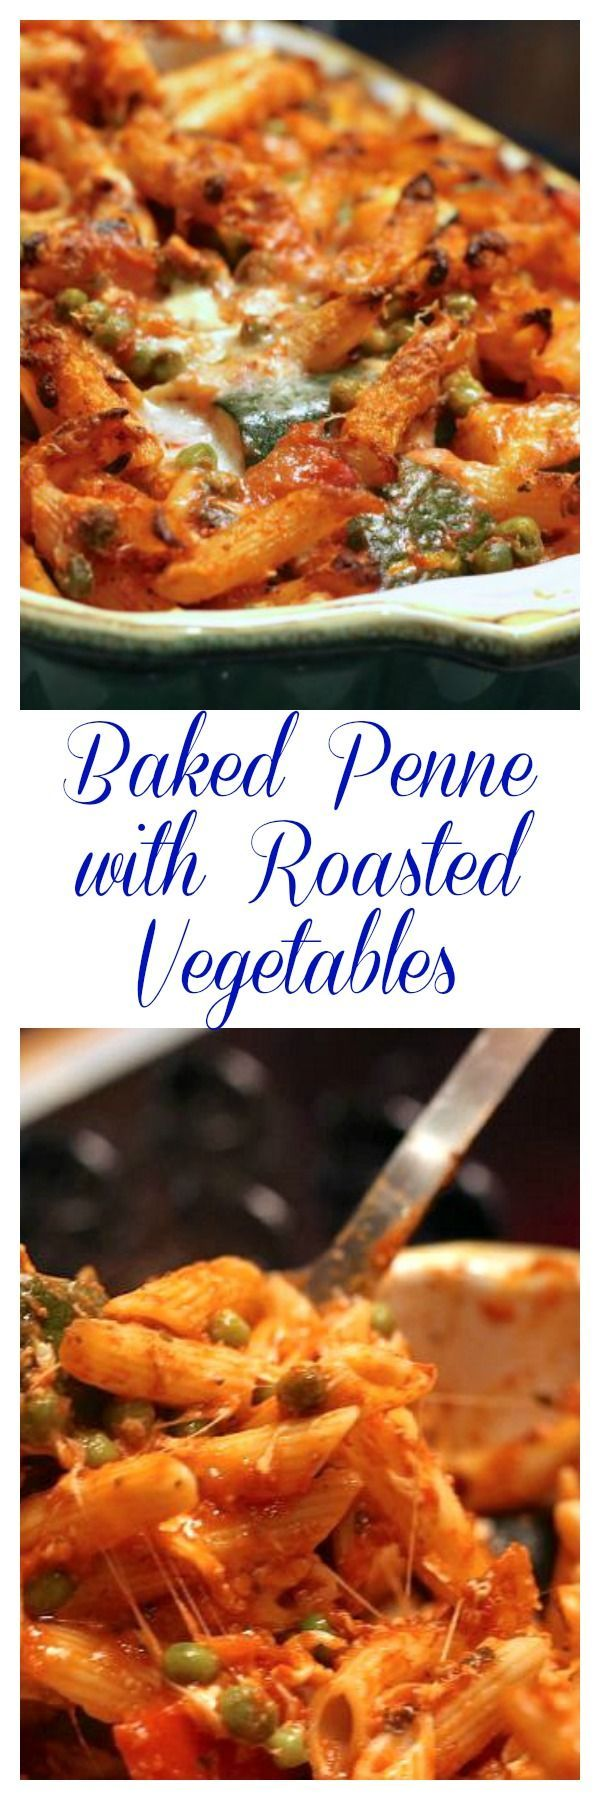 Baked Penne with Roasted Vegetables   Recipe   Penne, Baked penne and ...